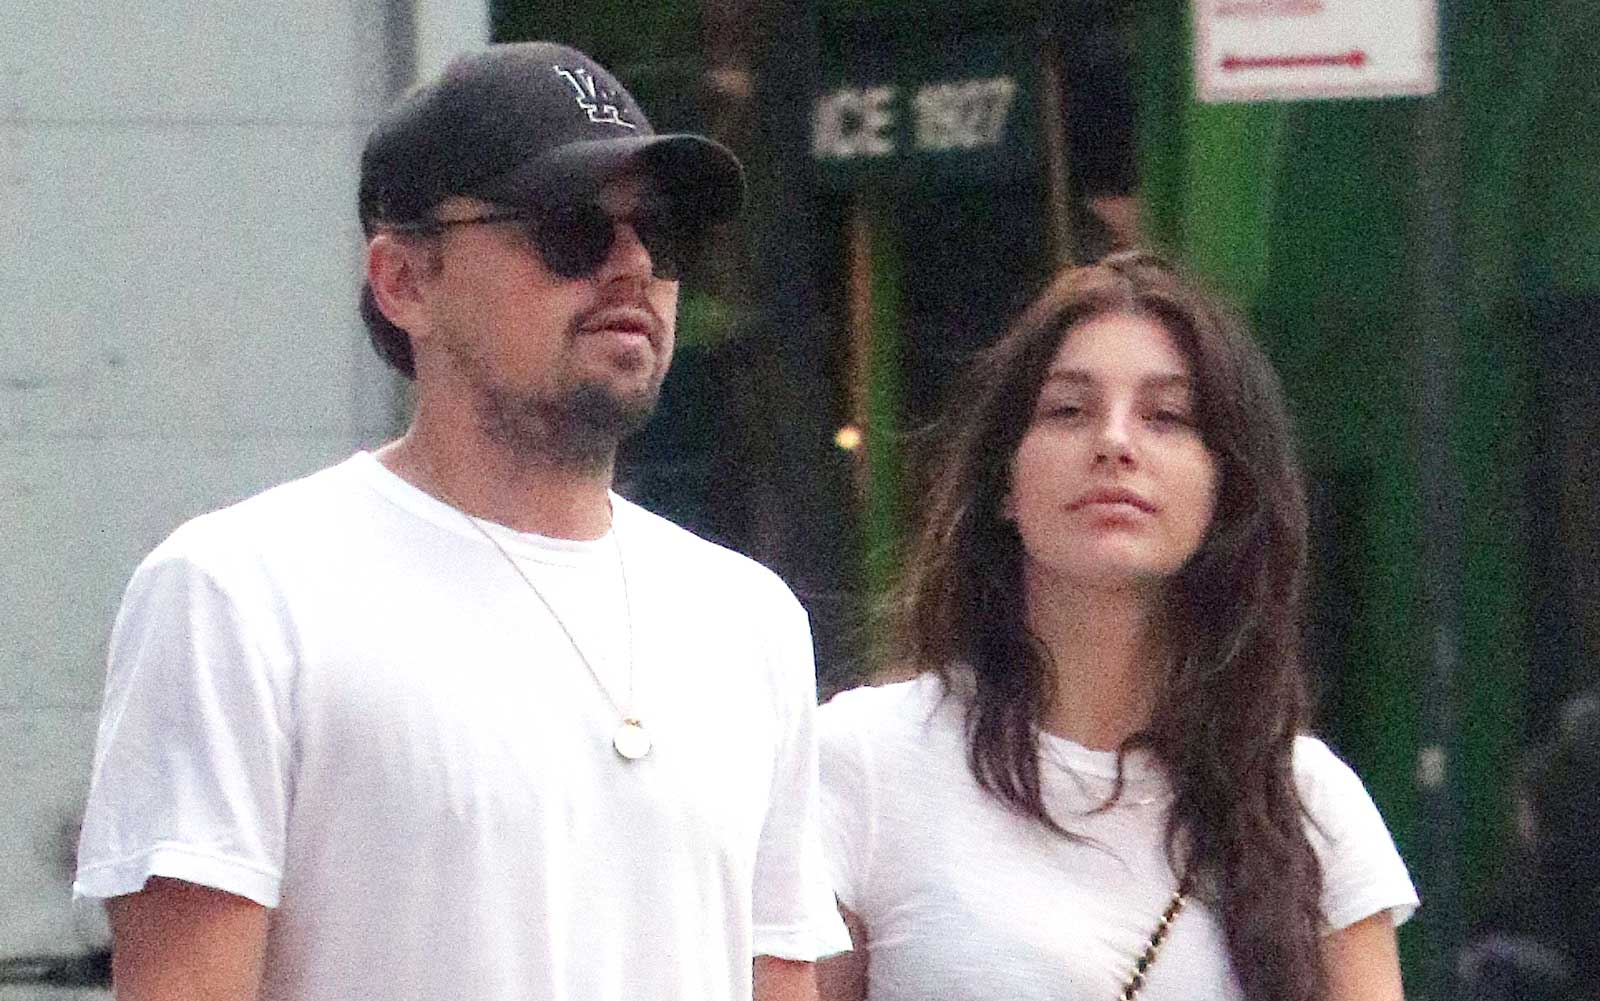 Leonardo DiCaprio and Camila Morrone out